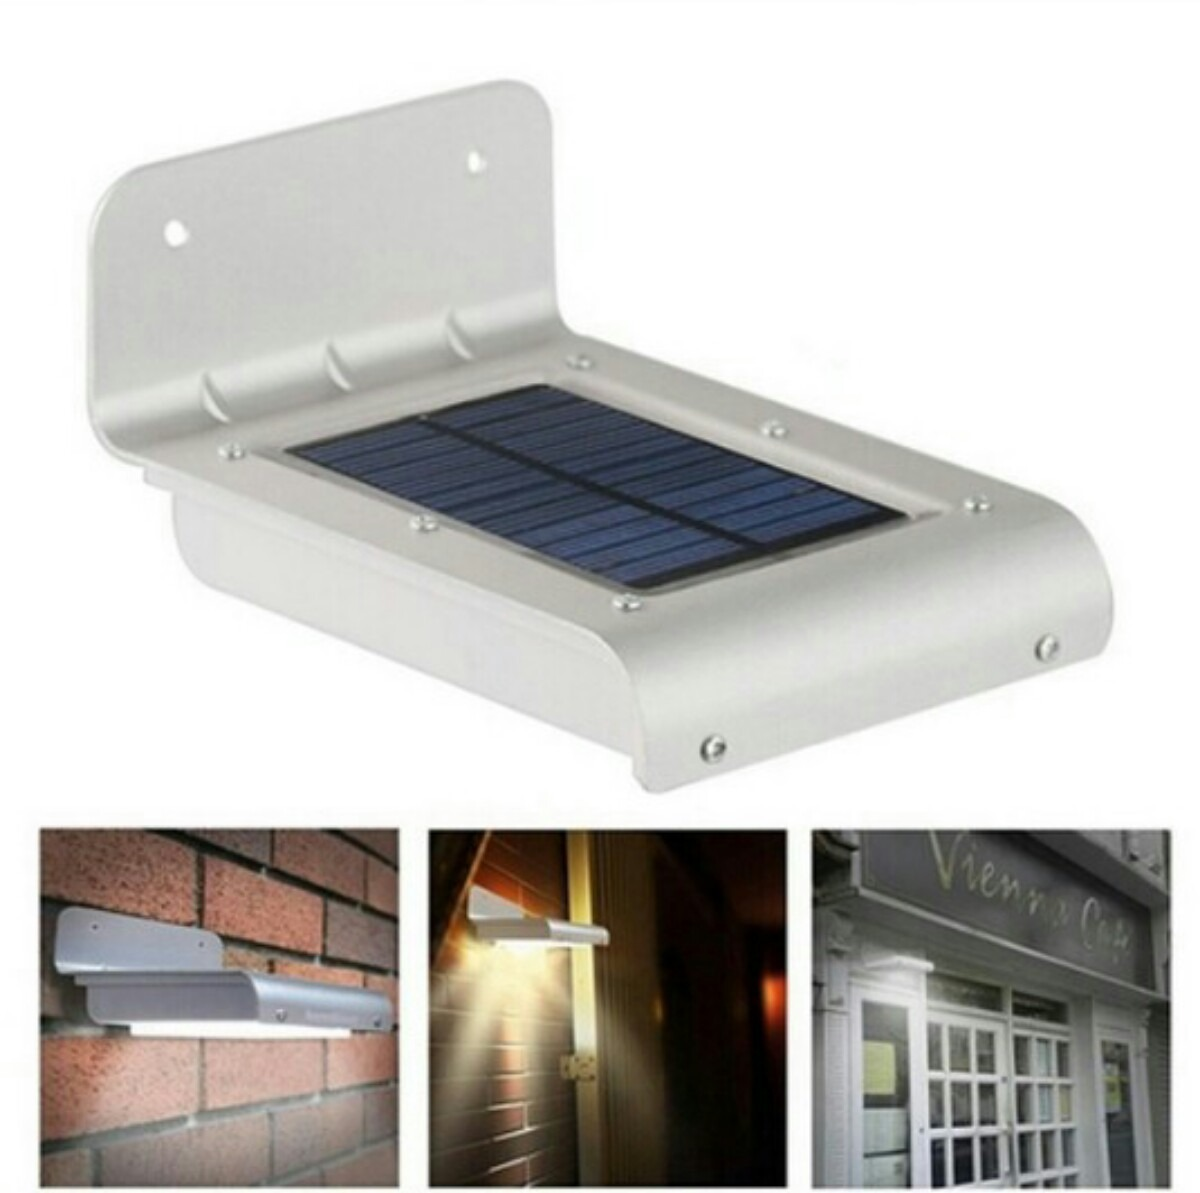 L mpara 16w 100 lumen led solar sensor movimiento for Lampara solar led